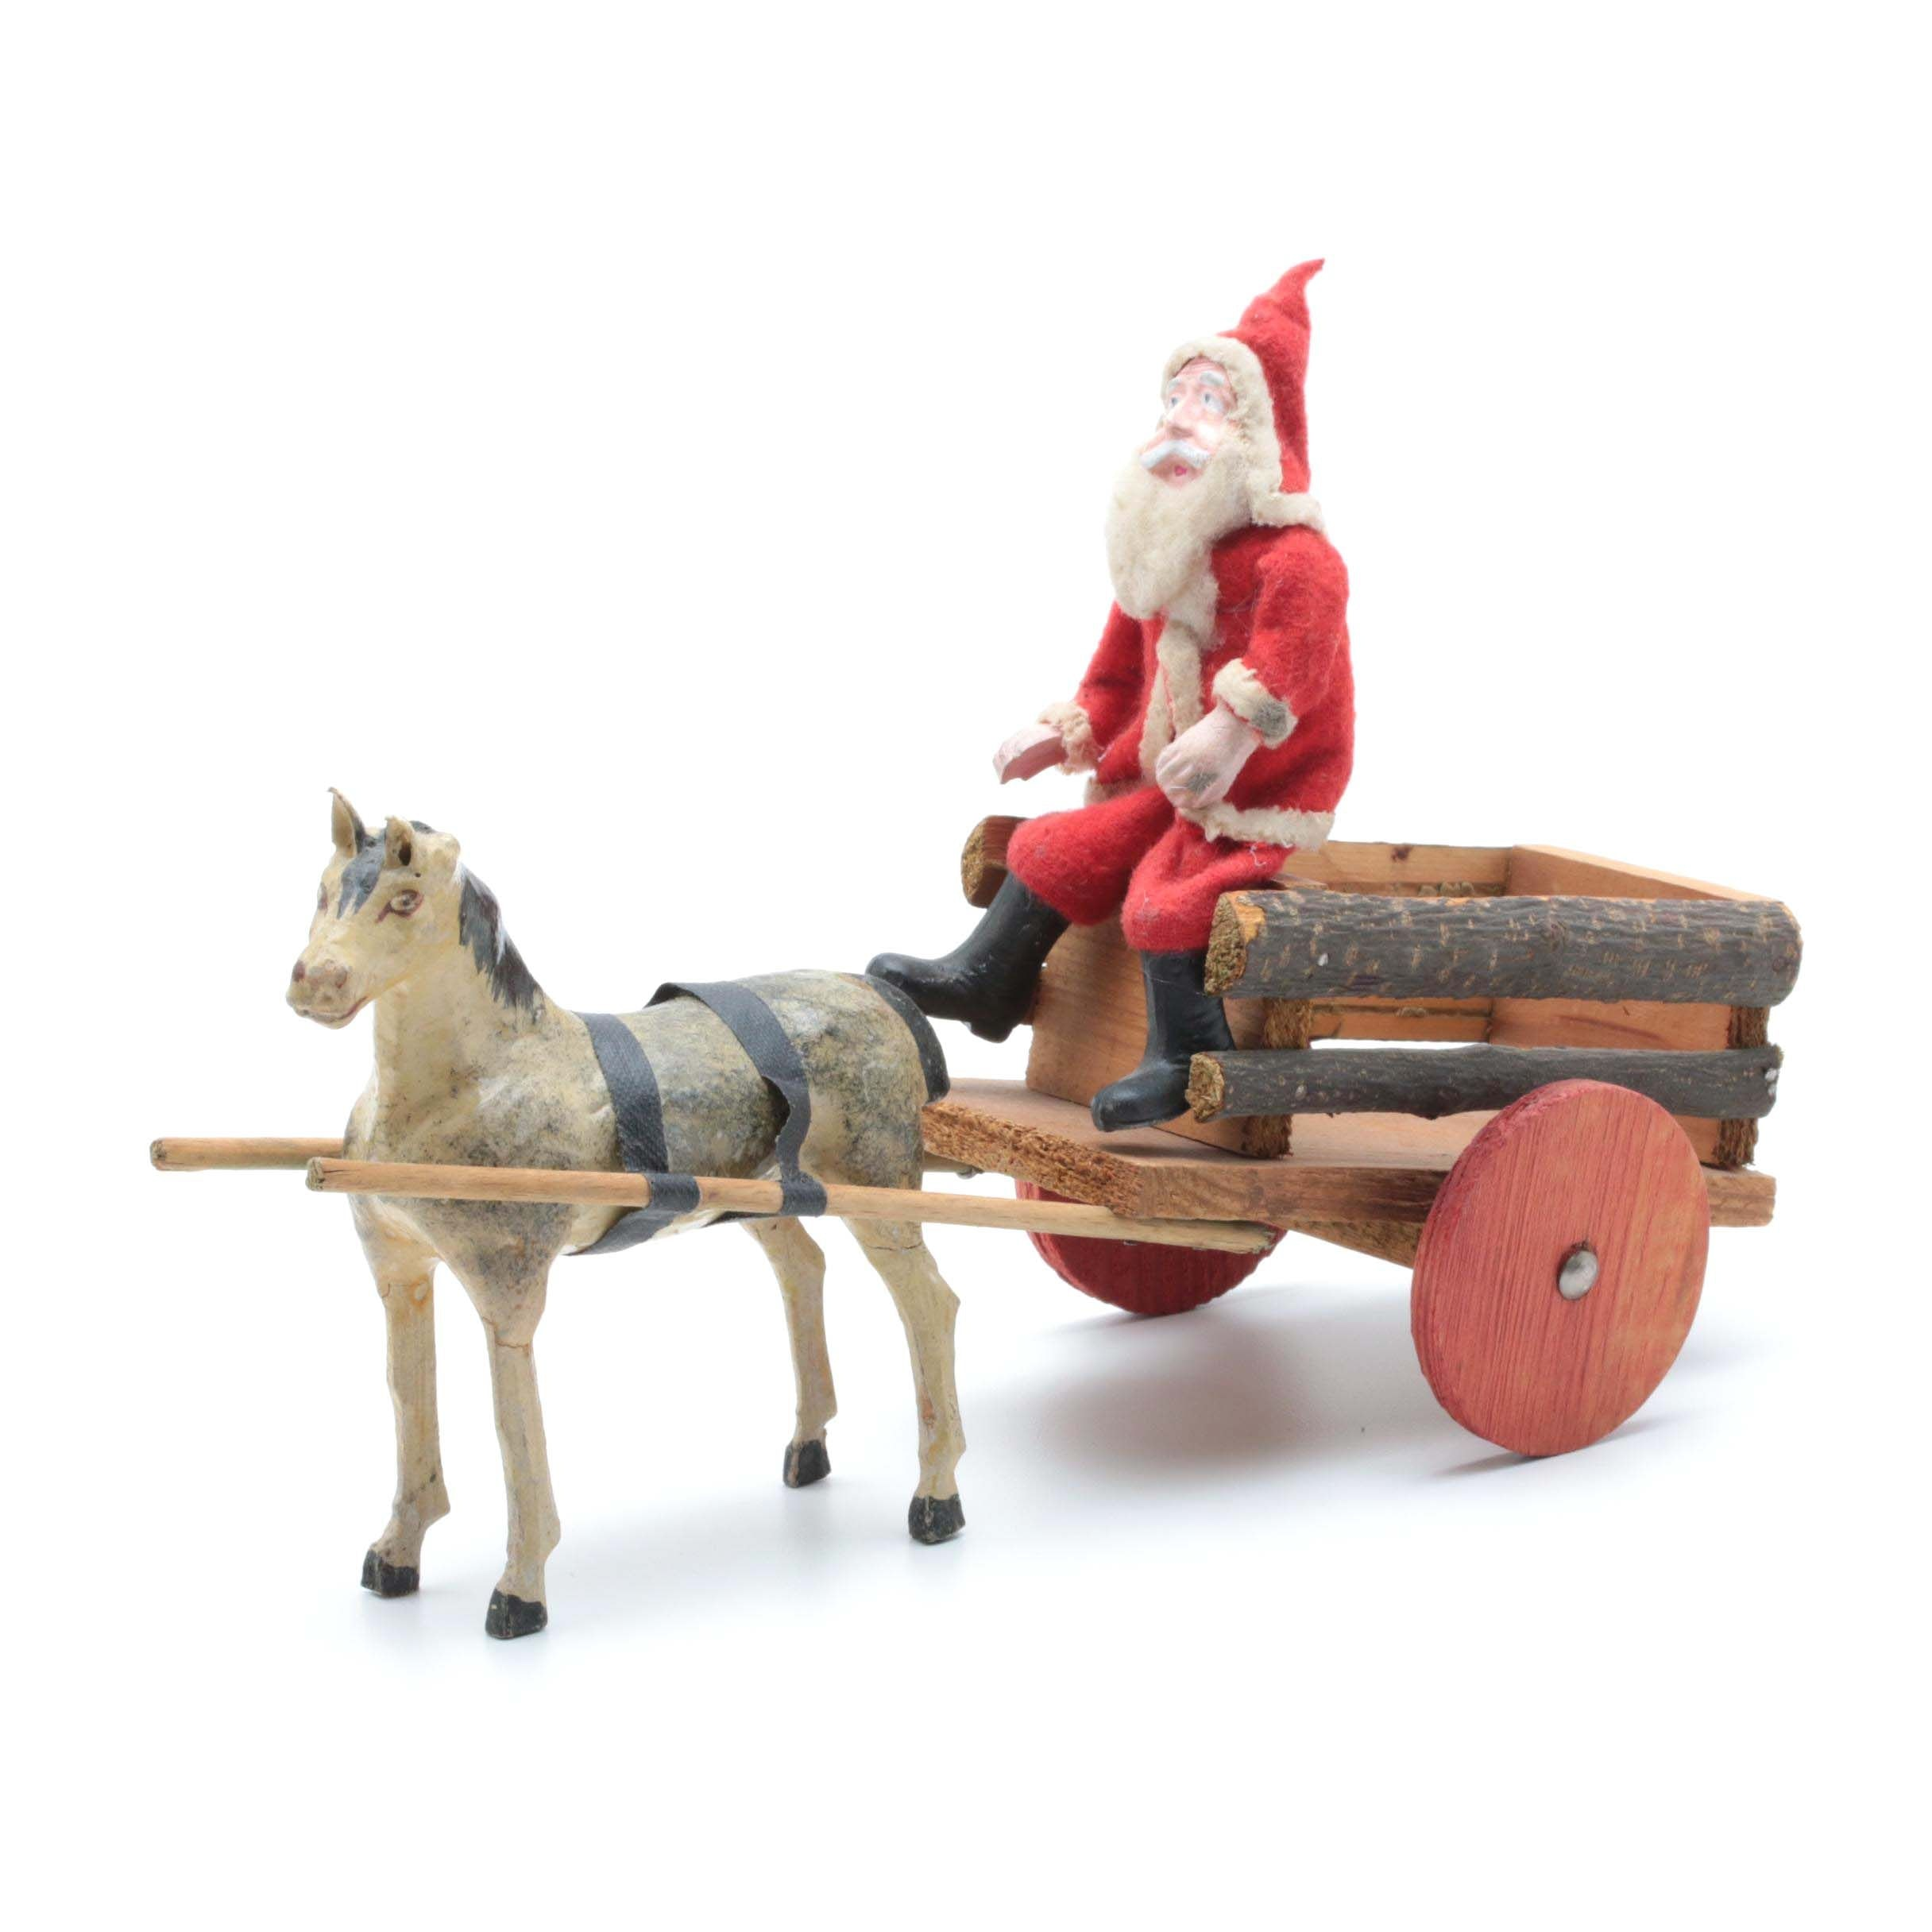 Vintage German Papier-Mâché Toy Horse and Wagon with St. Nick